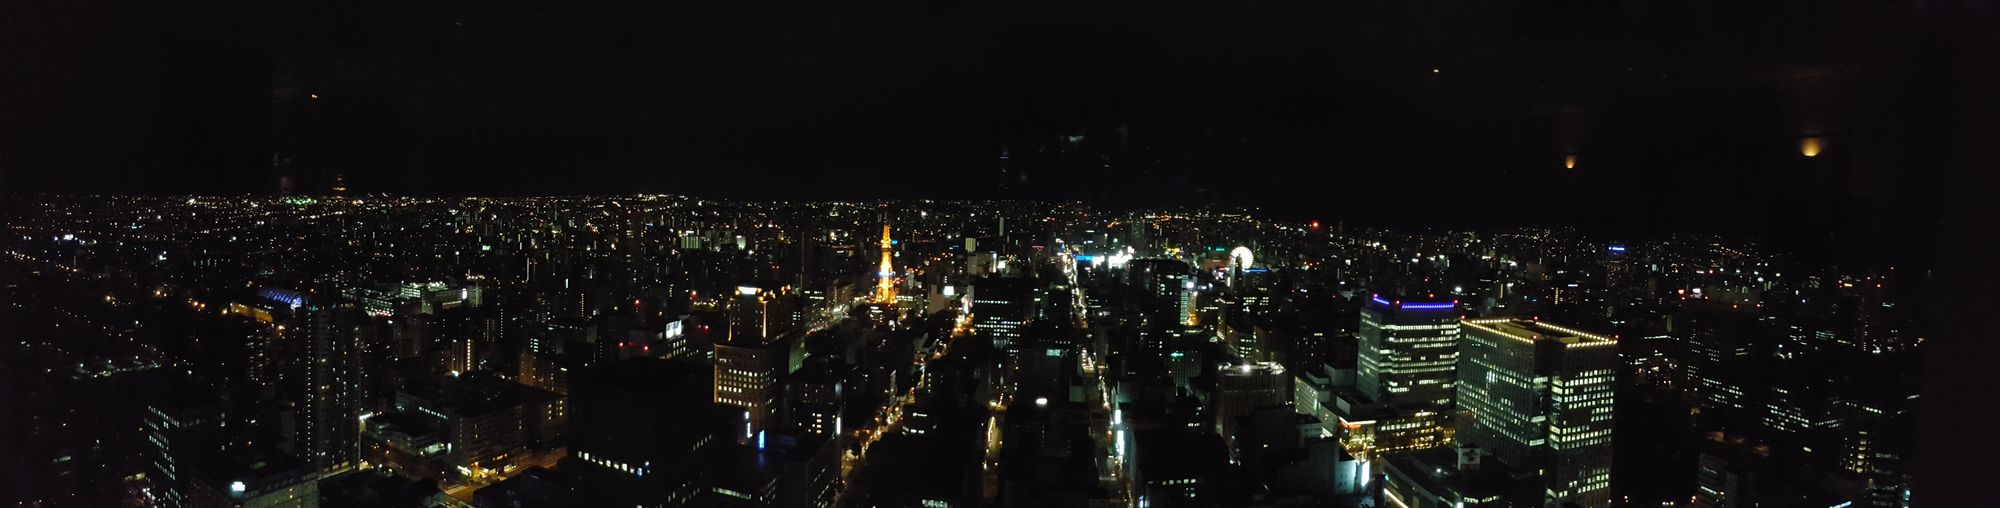 Panoramic Photography Nightview Of Sapporo Downtown From Rooftop JR Tower Japan Photography Version 1